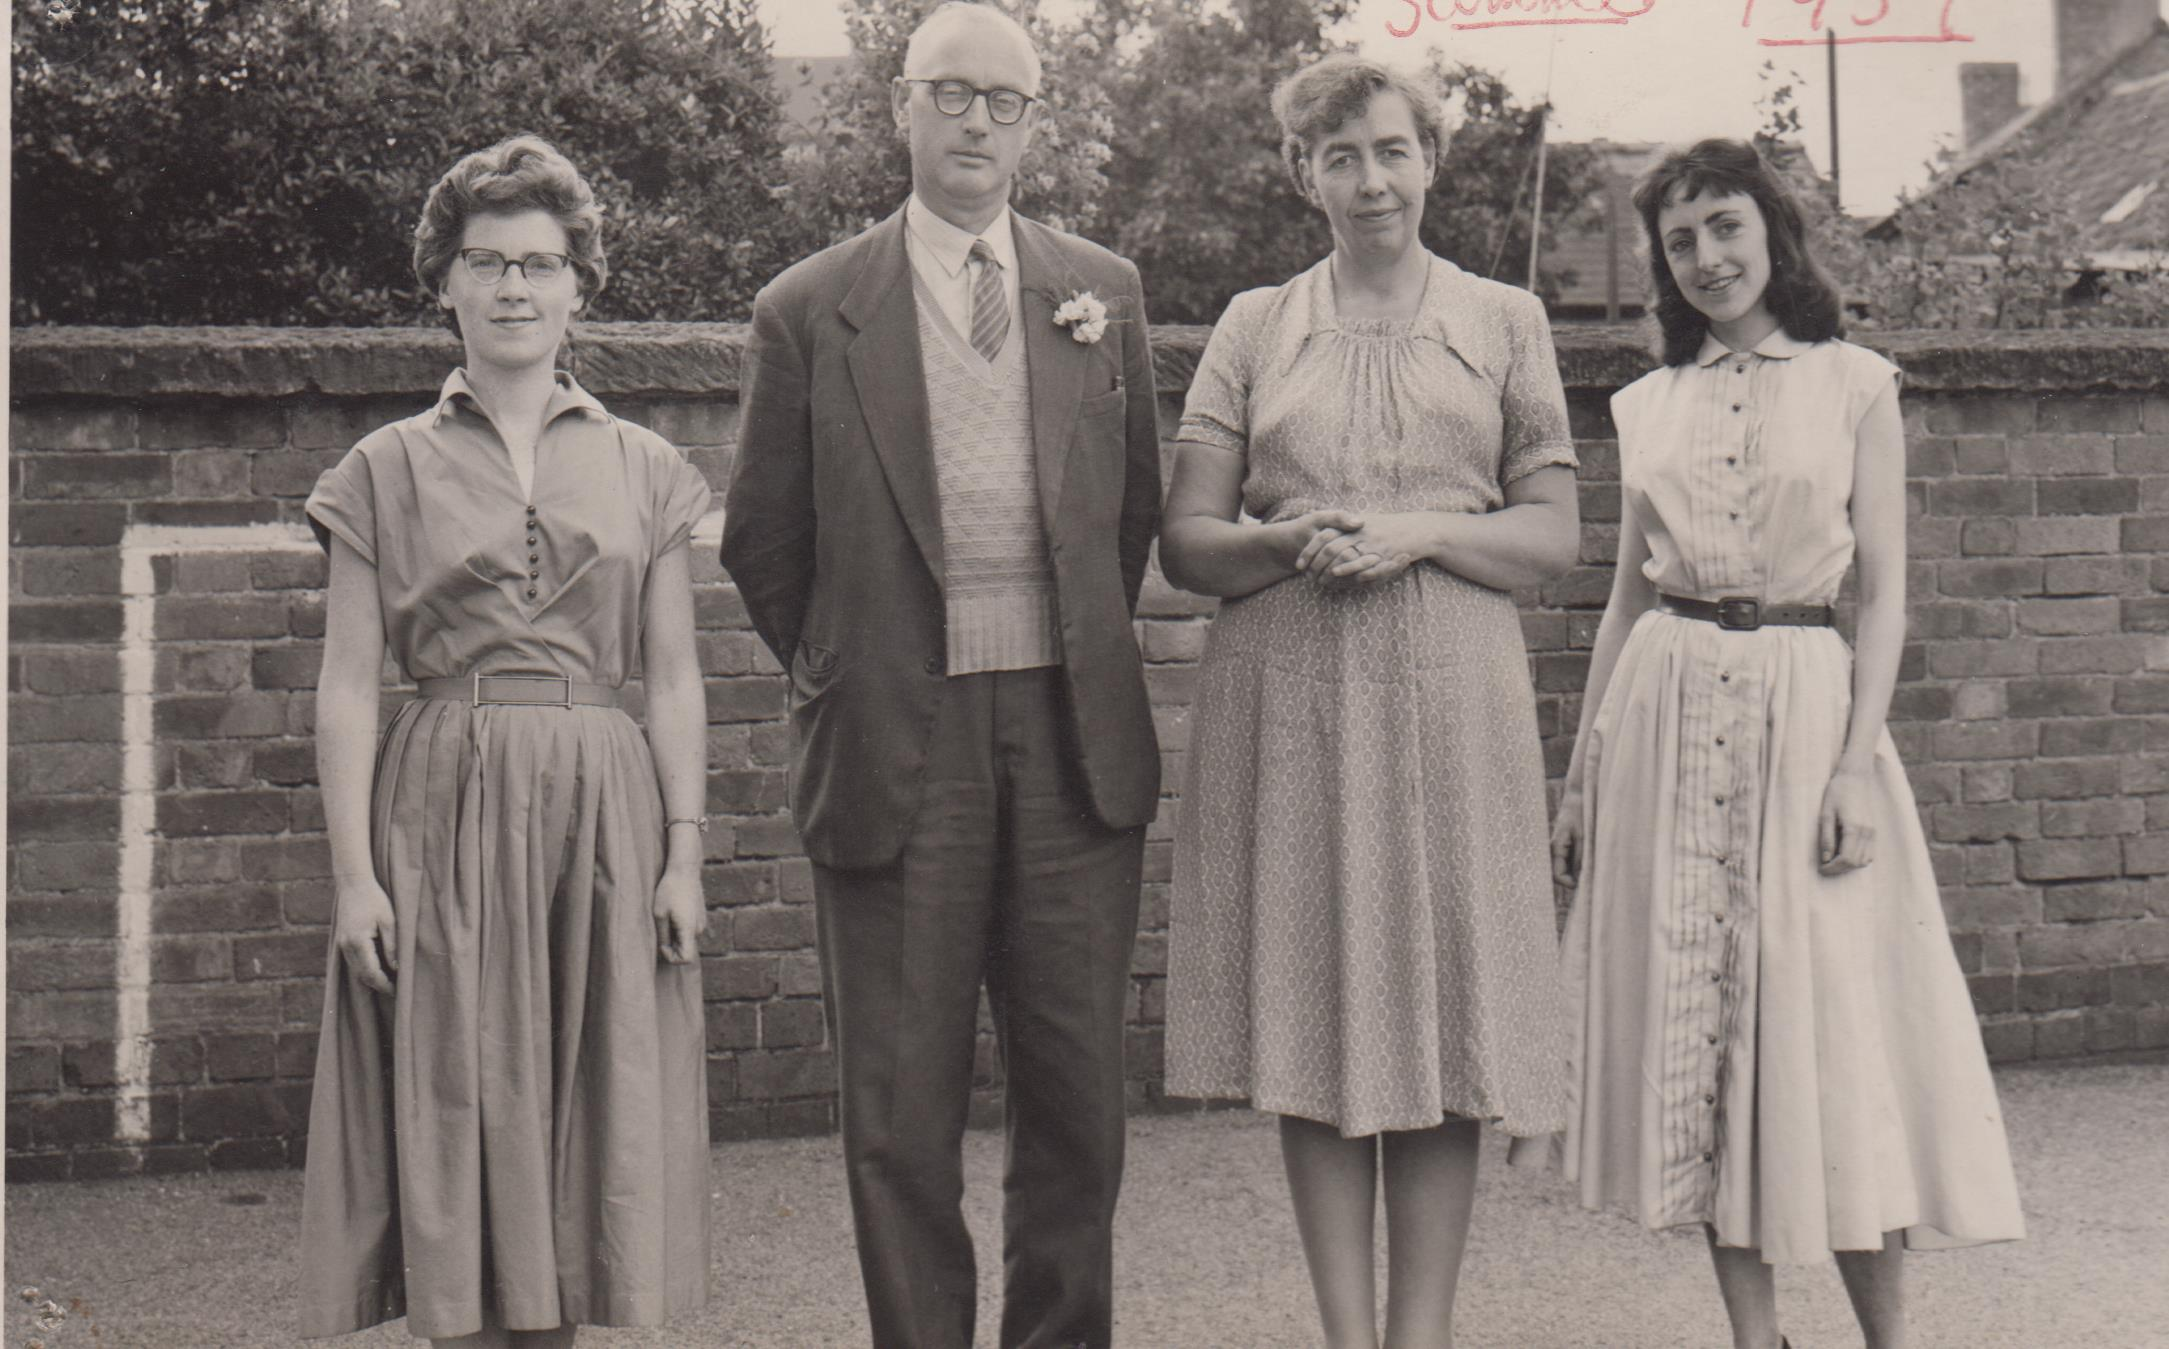 school_teachers_summer_1957_001.jpg